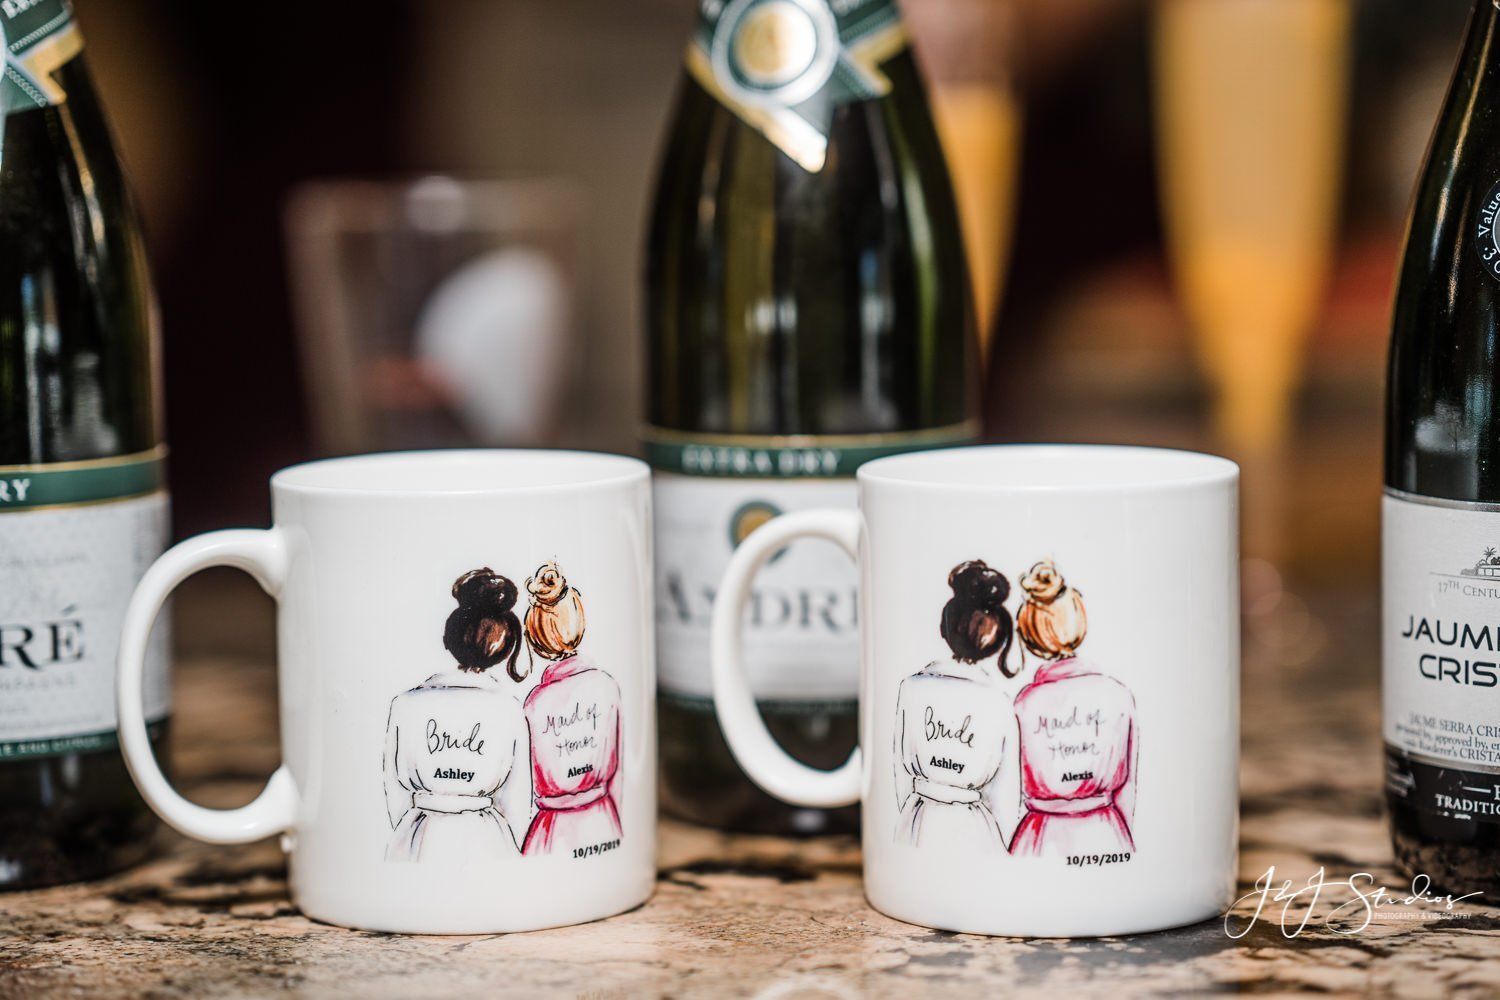 custom printed mugs with wedding date